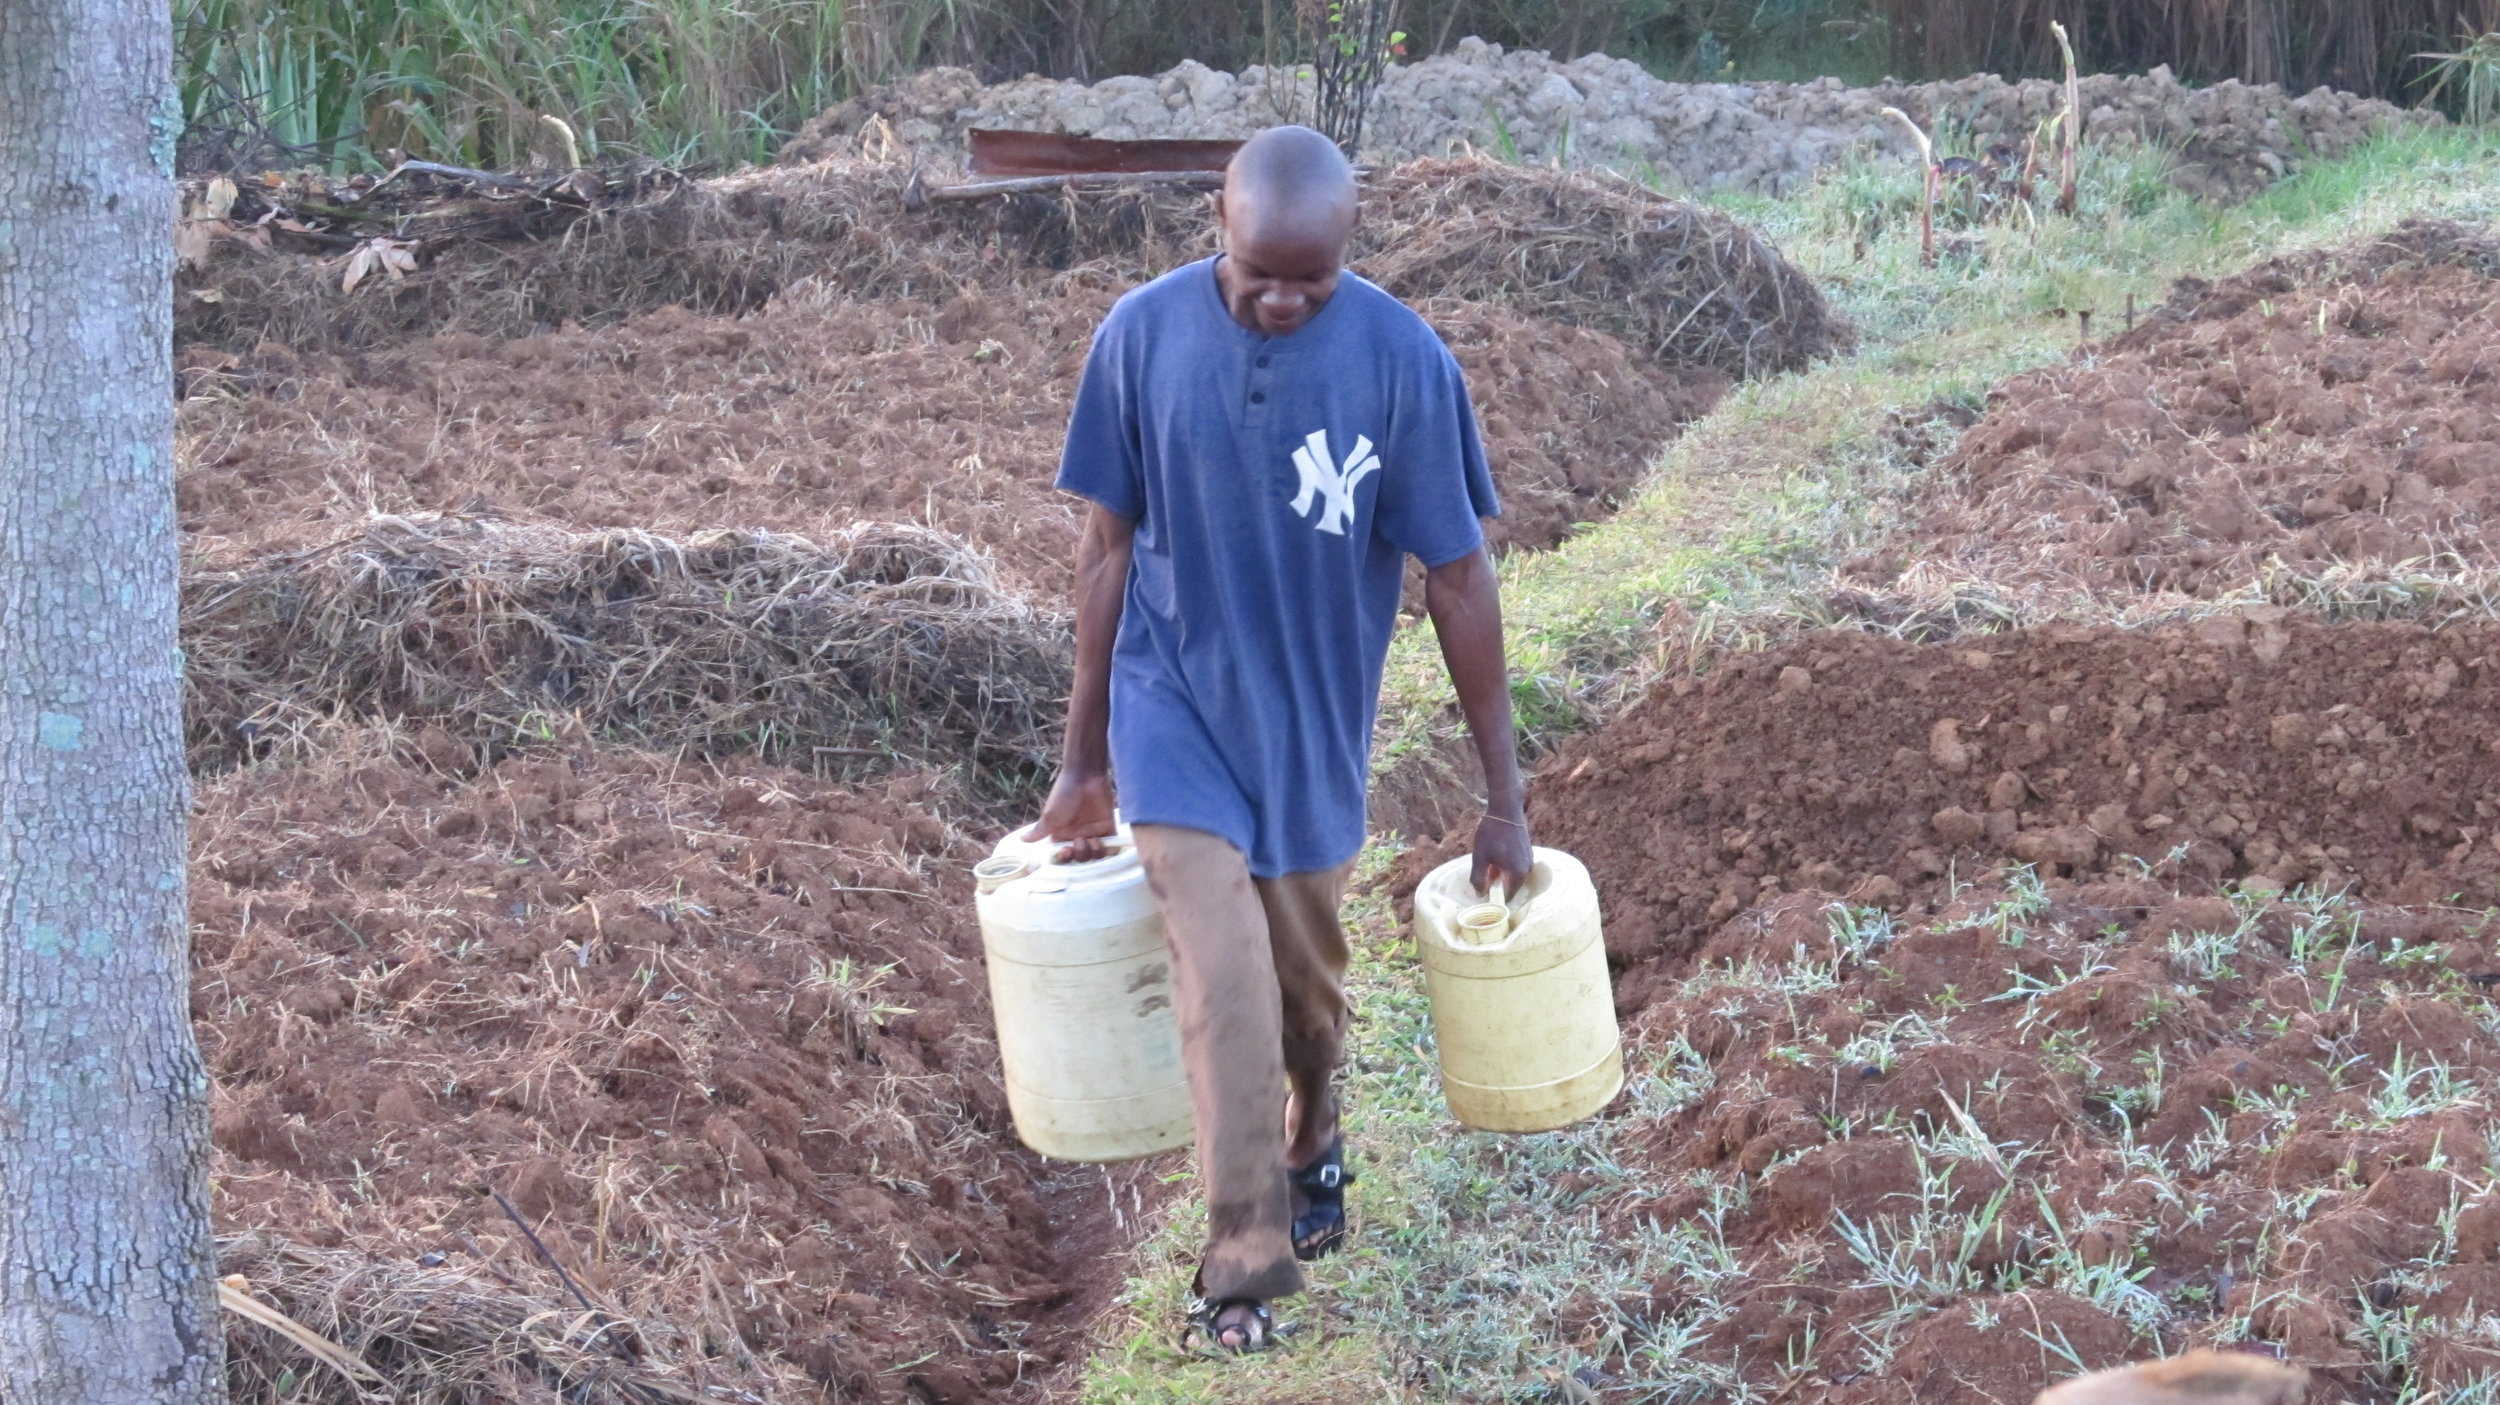 Carrying water for irrigation